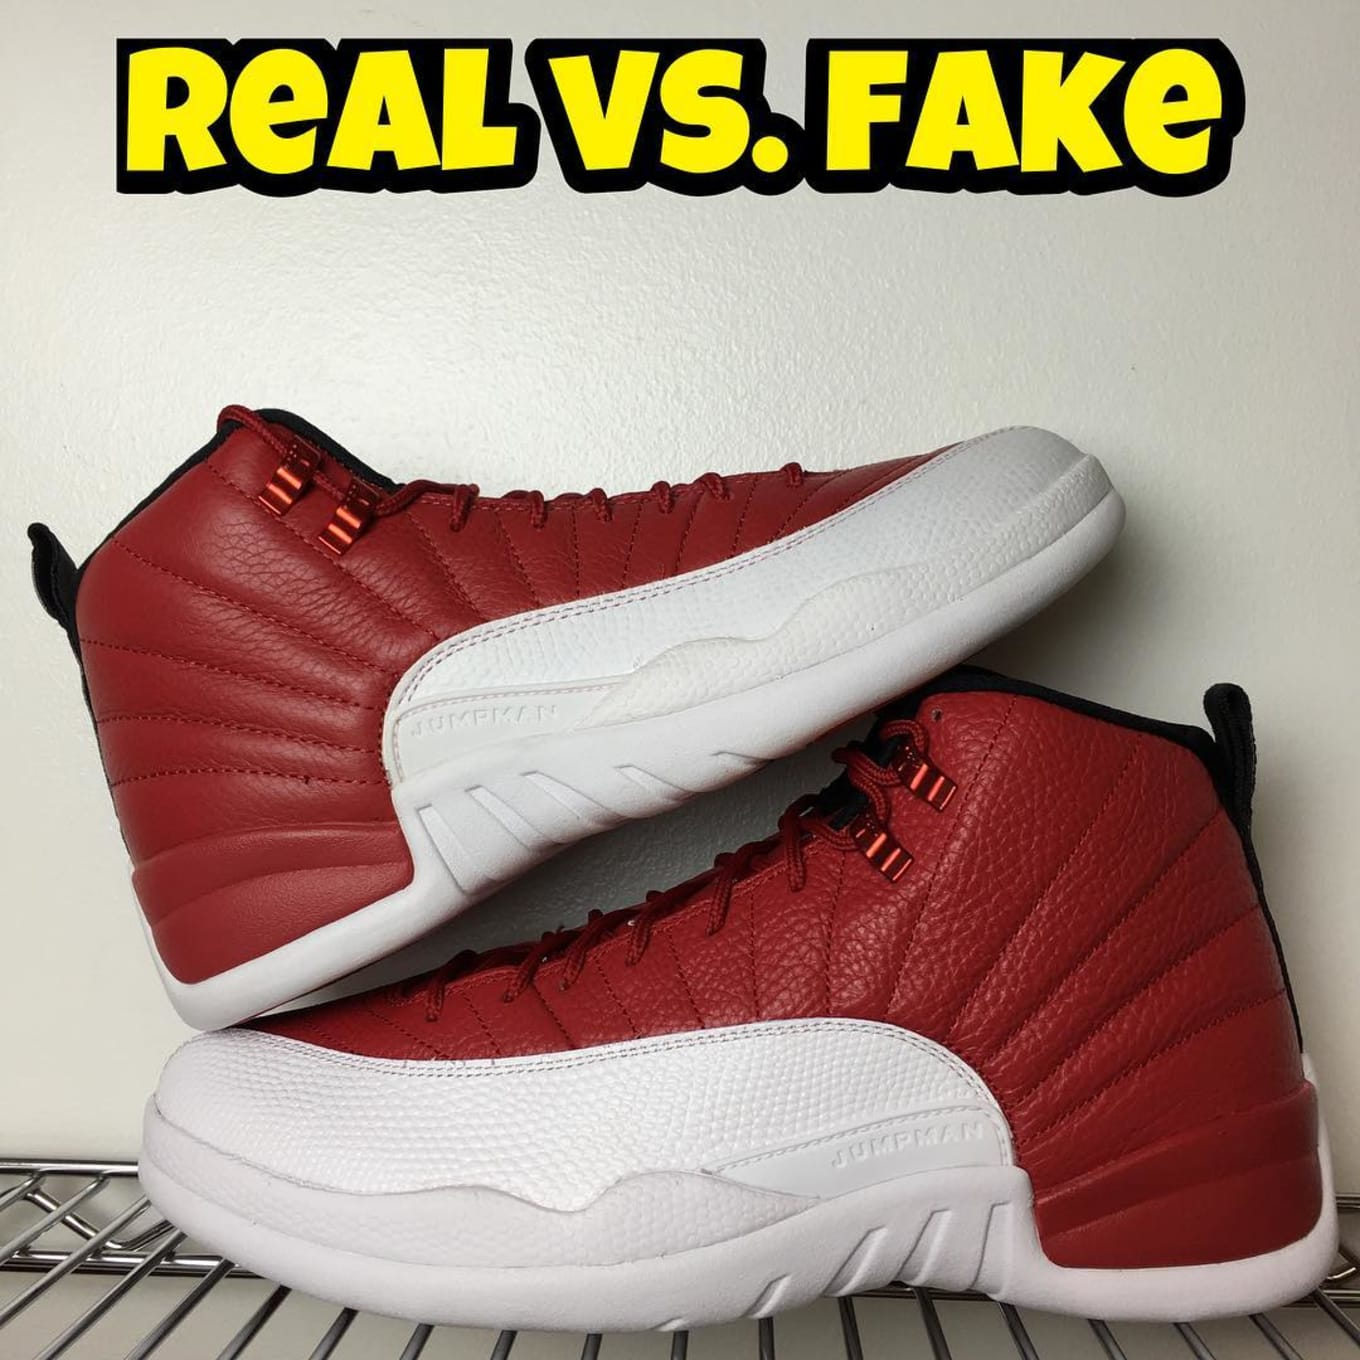 36333008bdb Air Jordan XII 12 Gym Red Real Fake Legit Check | Sole Collector